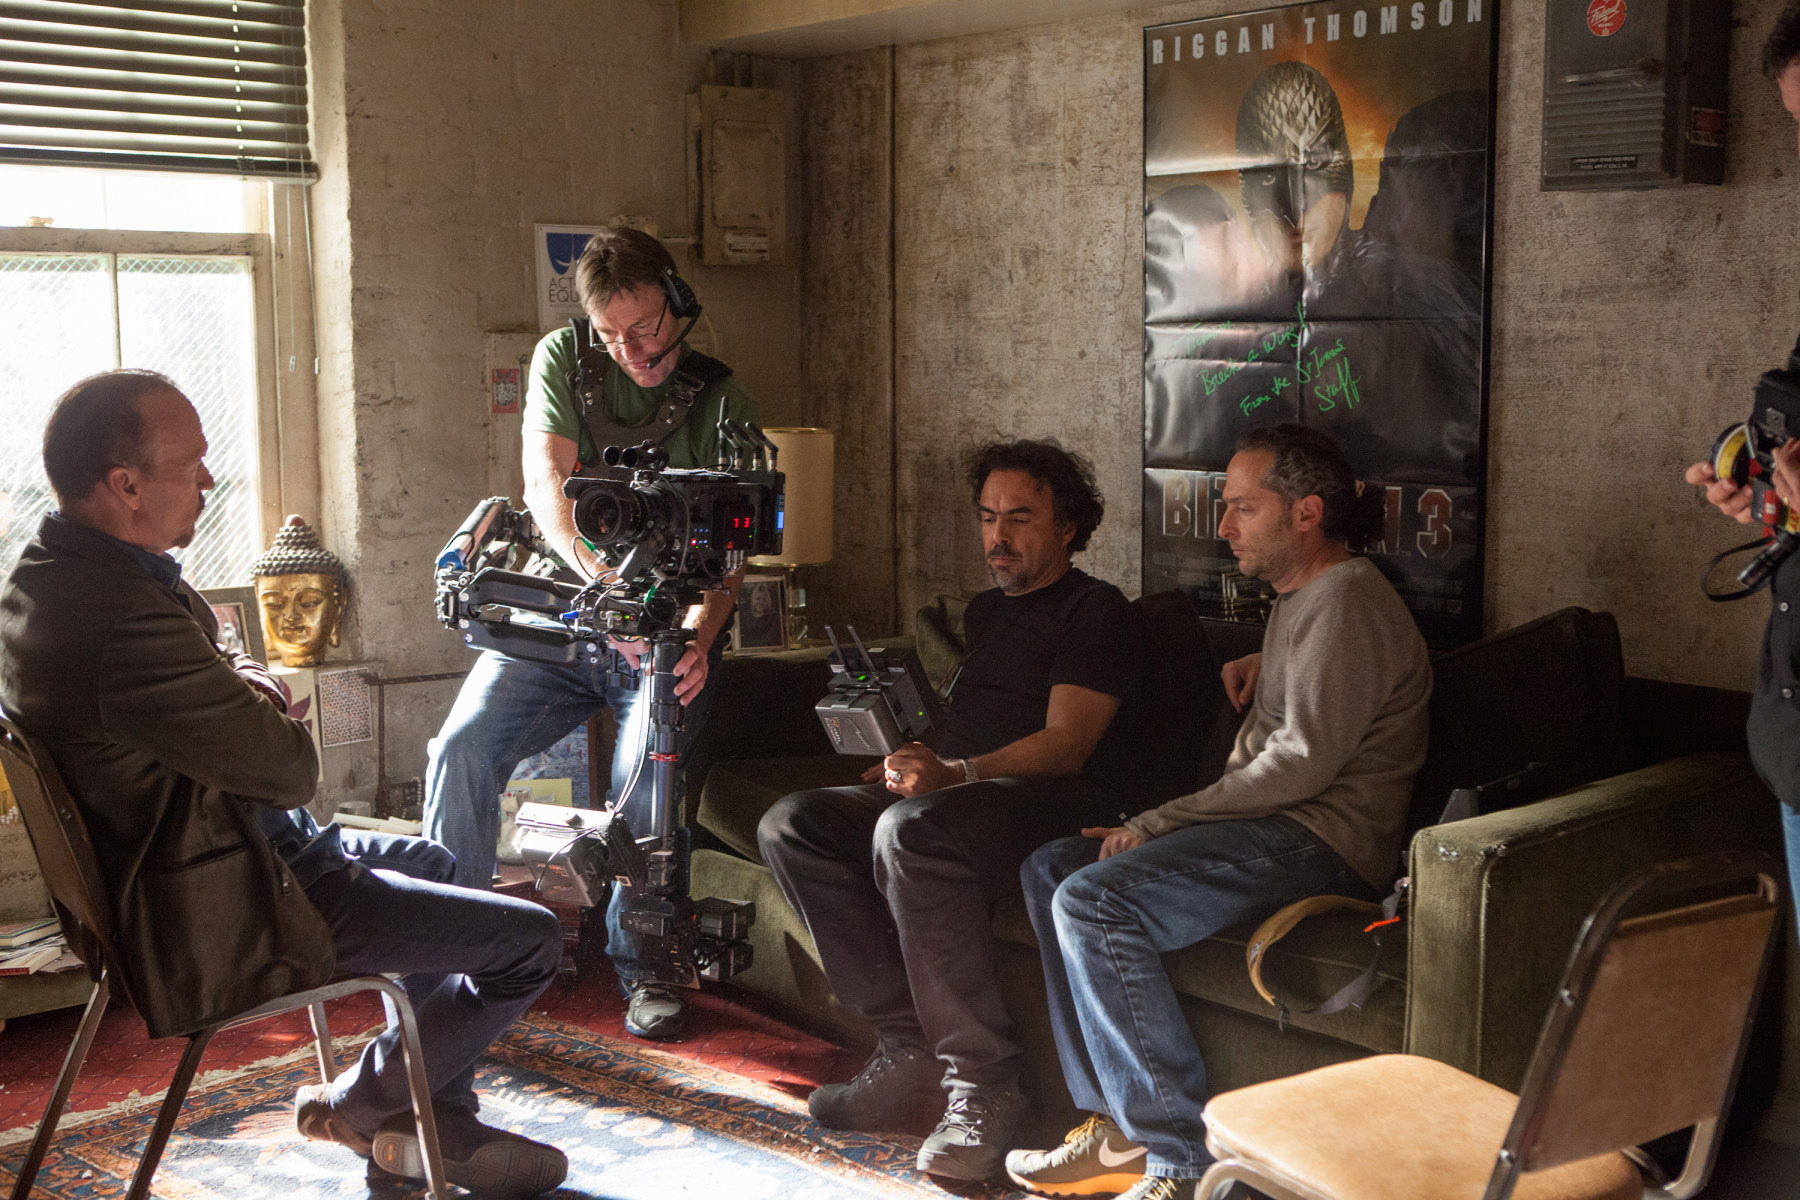 Birdman or (The Unexpected Virtue of Ignorance) Behind the Scenes Photos & Tech Specs